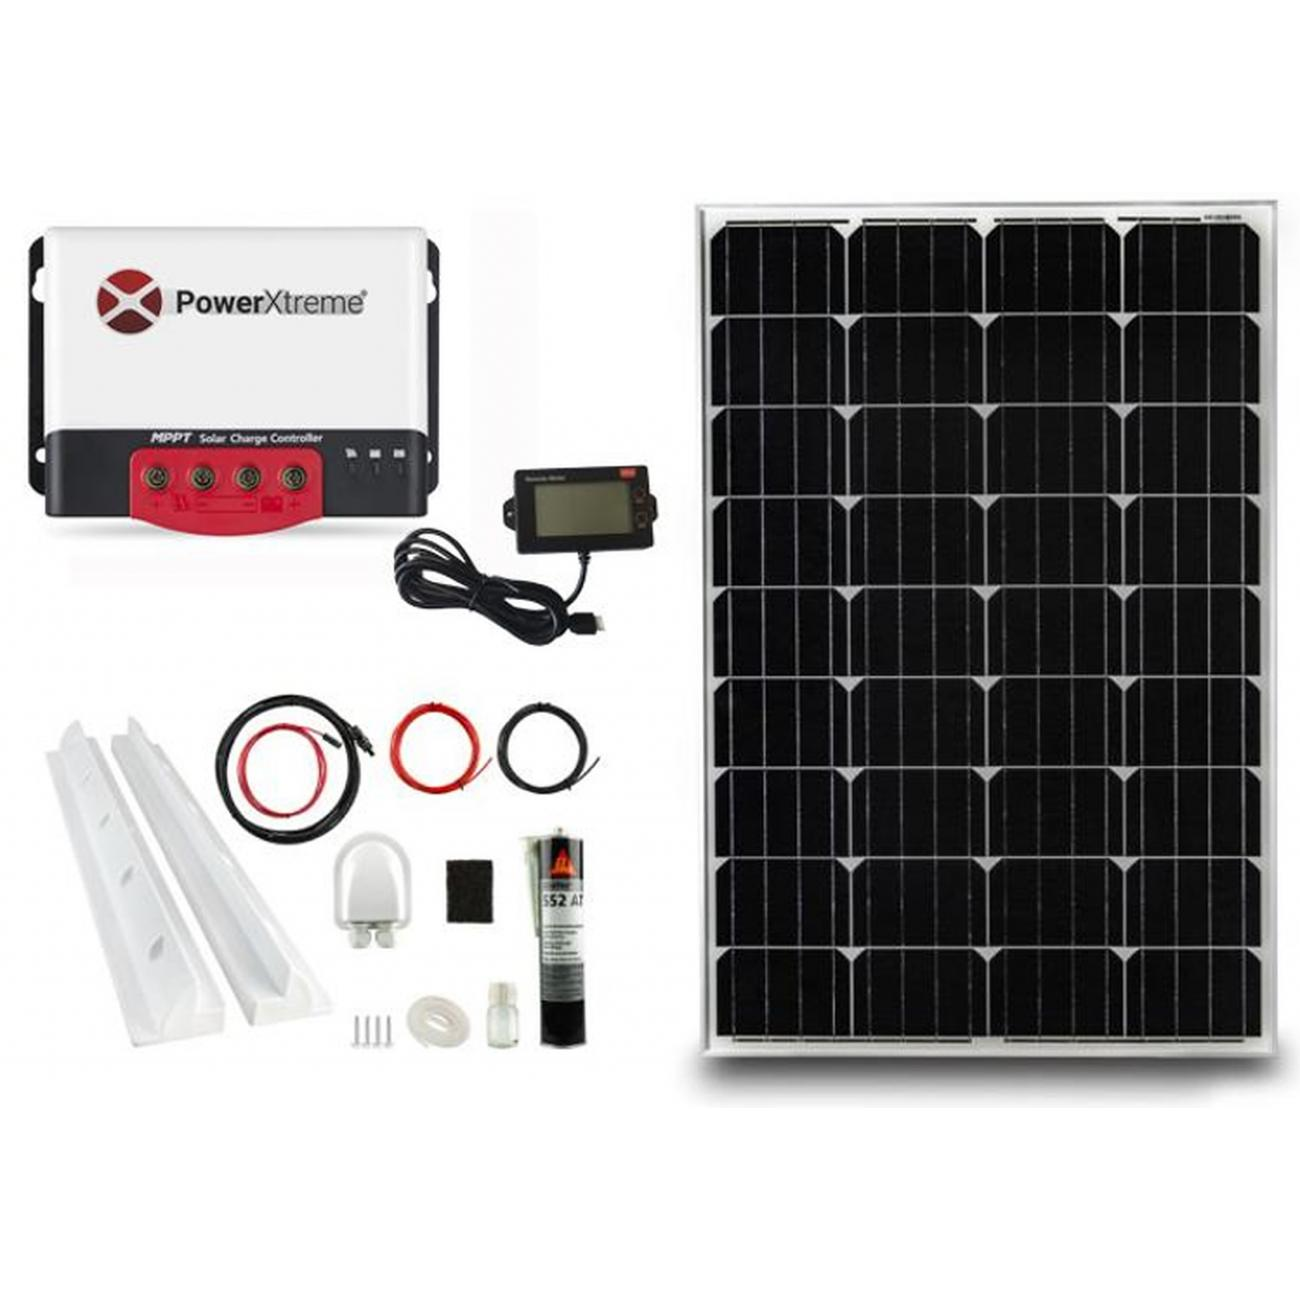 PowerXtreme XS20s Solar MPPT With Display 200W Package